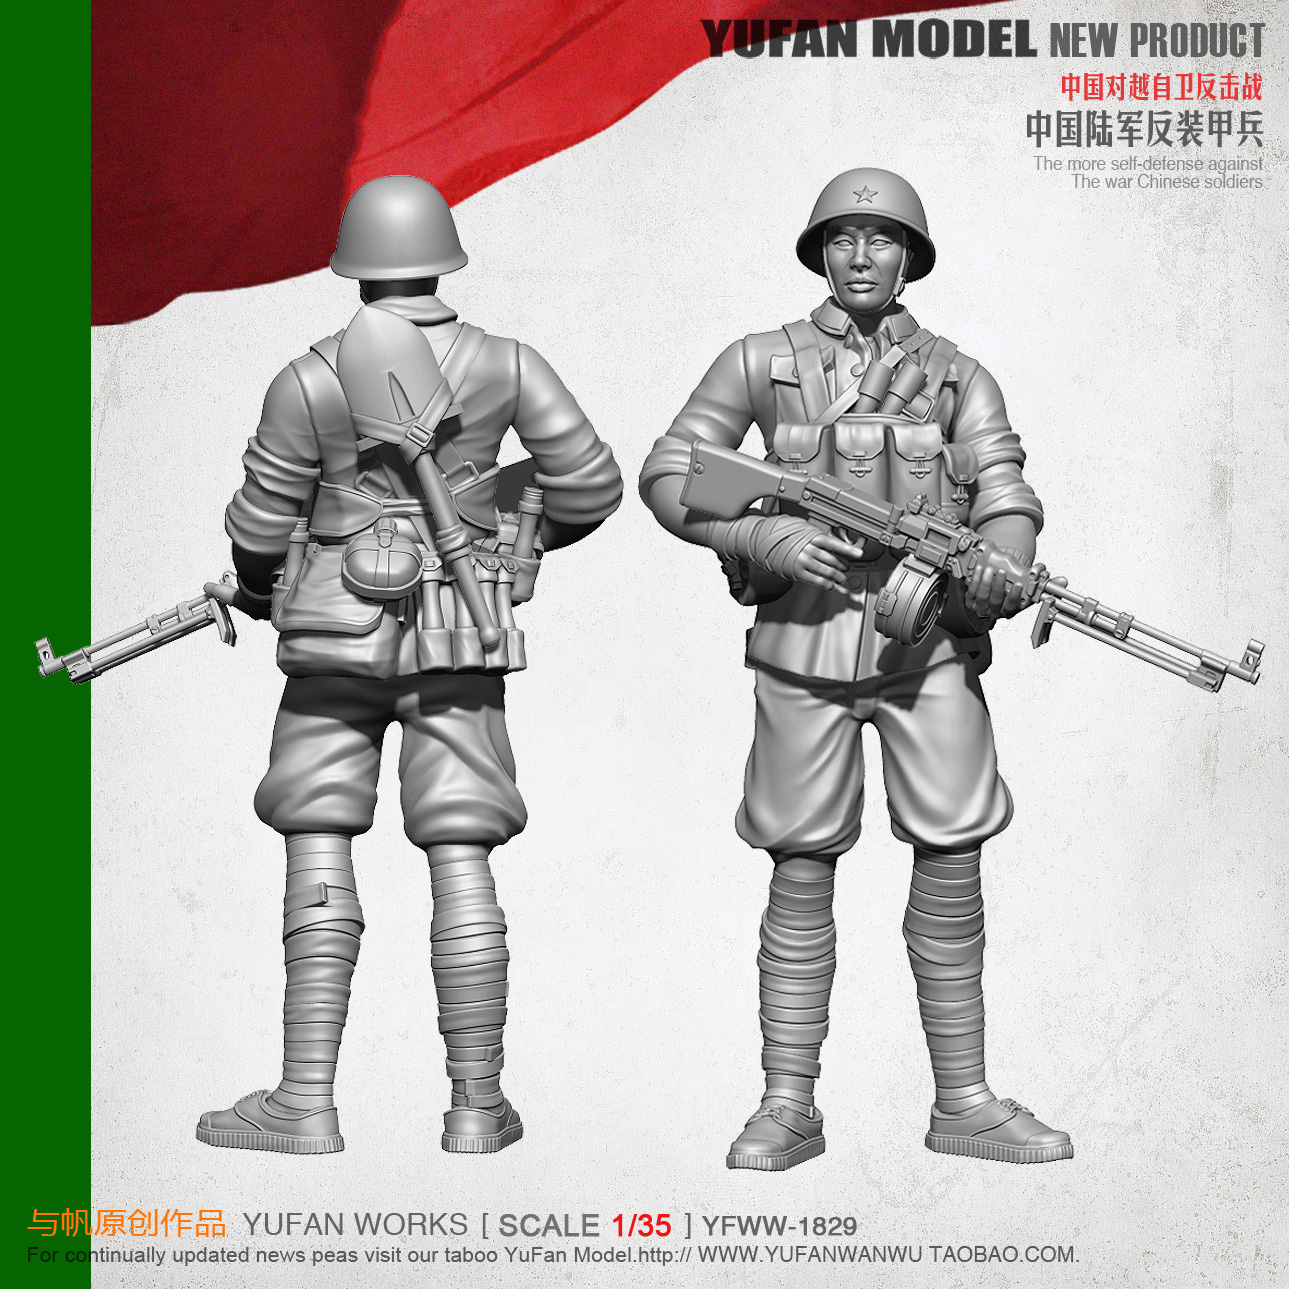 1/35 79 To Vietnam Chinese Army Machine Gunner YFWW-1829 image